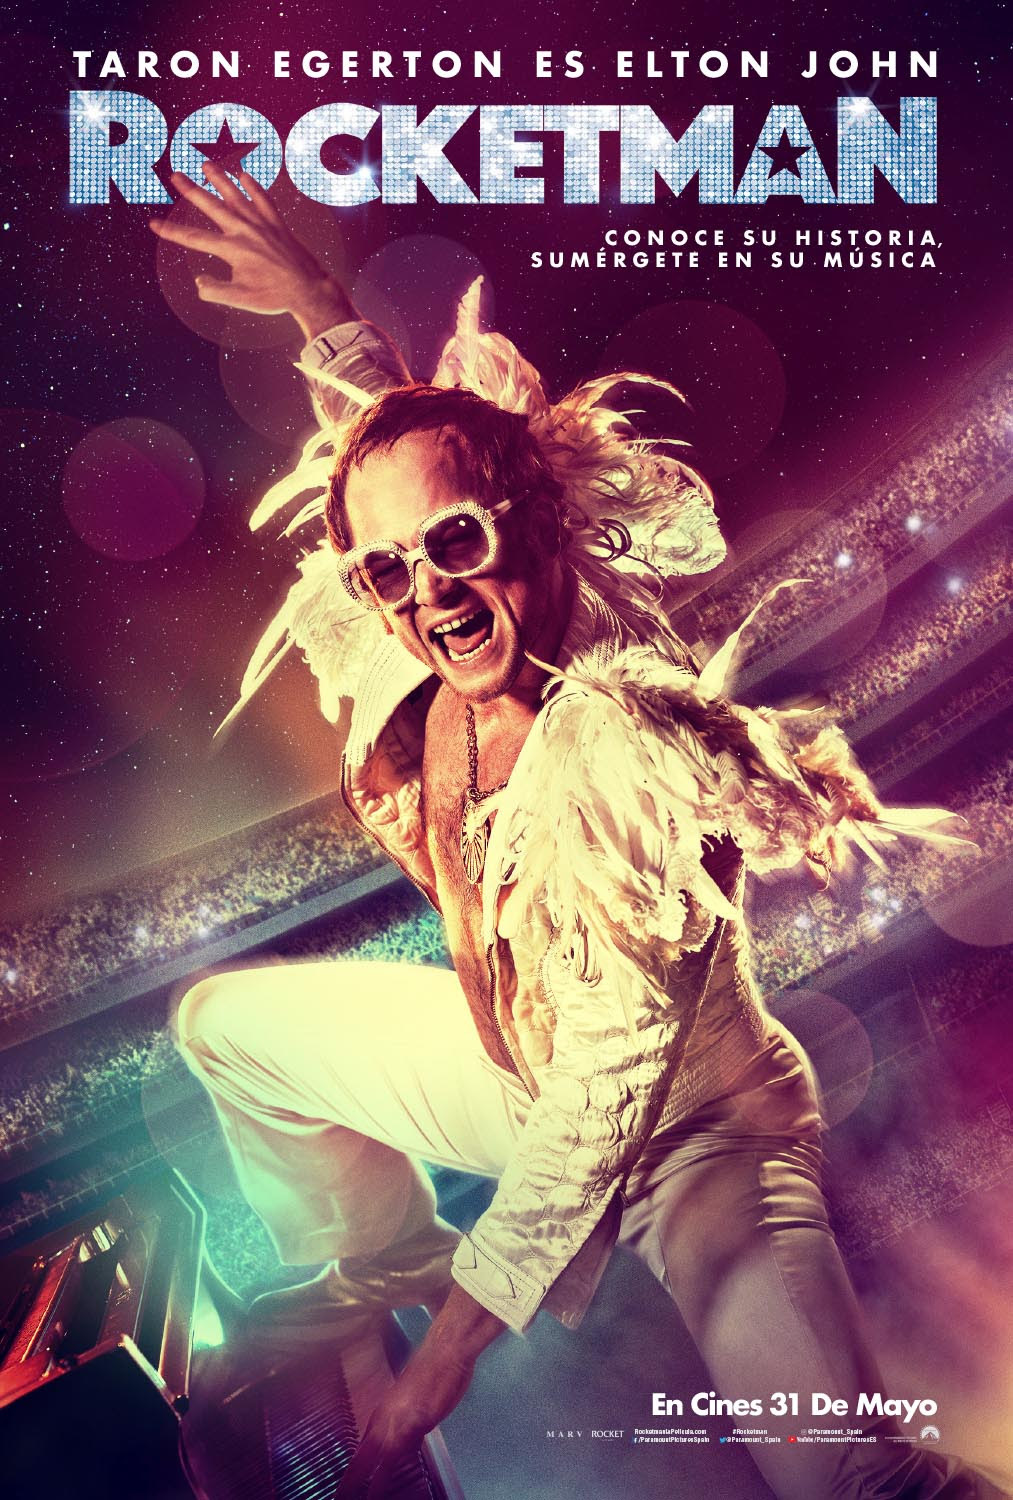 STAGE TUBE: Nuevo Poster y Trailer de ROCKETMAN